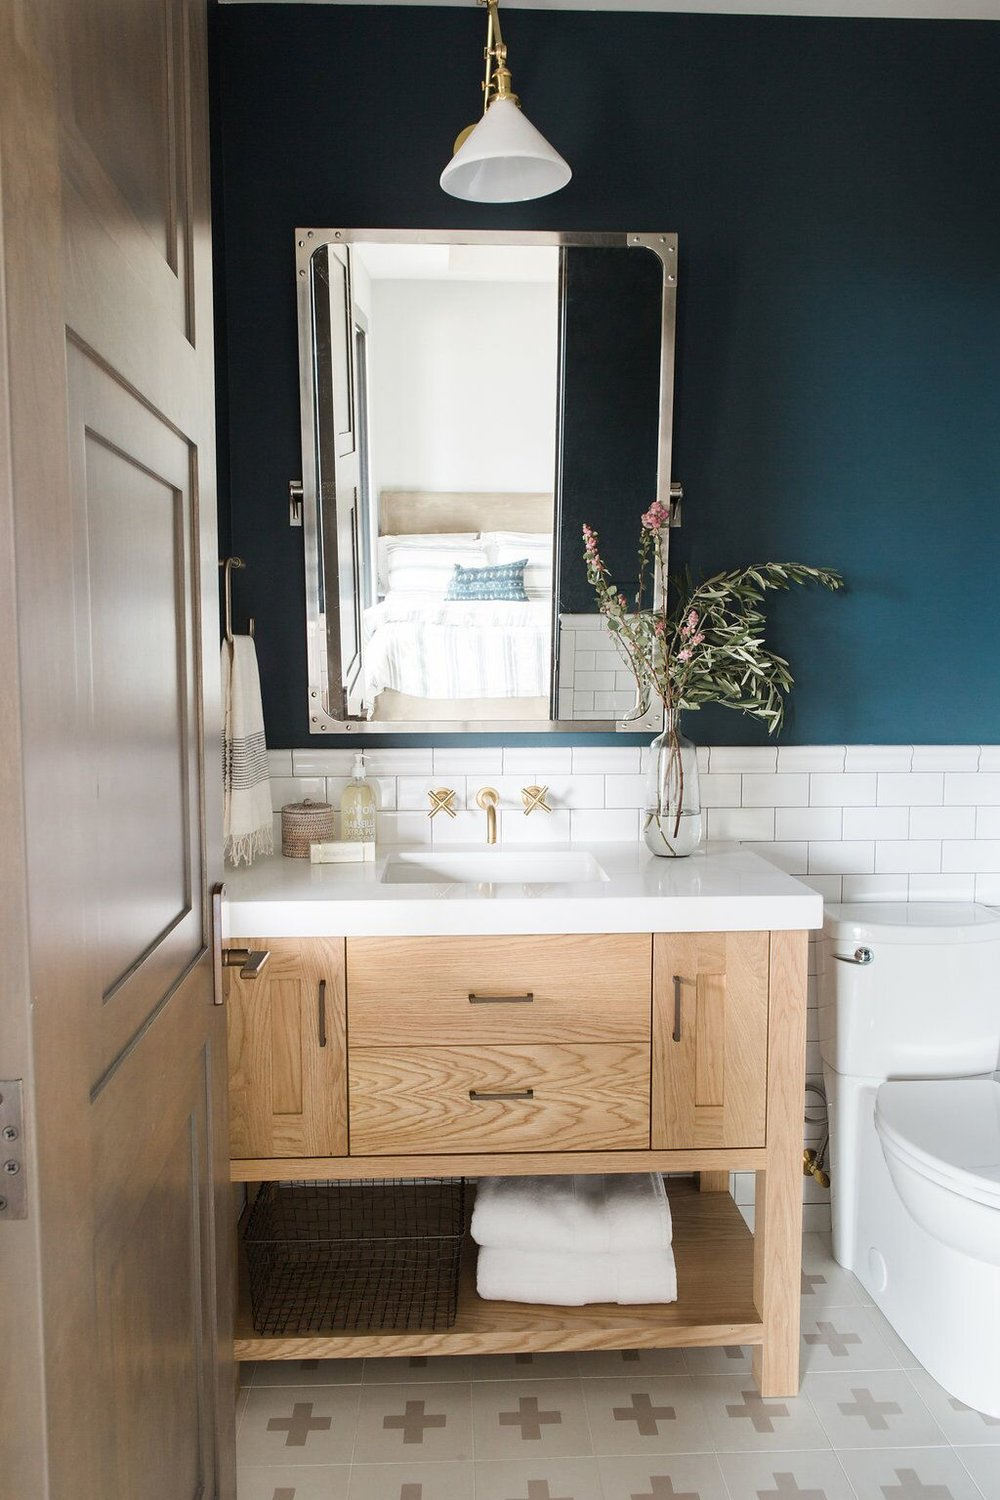 Dramatic and dark bathroom with subway tile and patterned tile floors